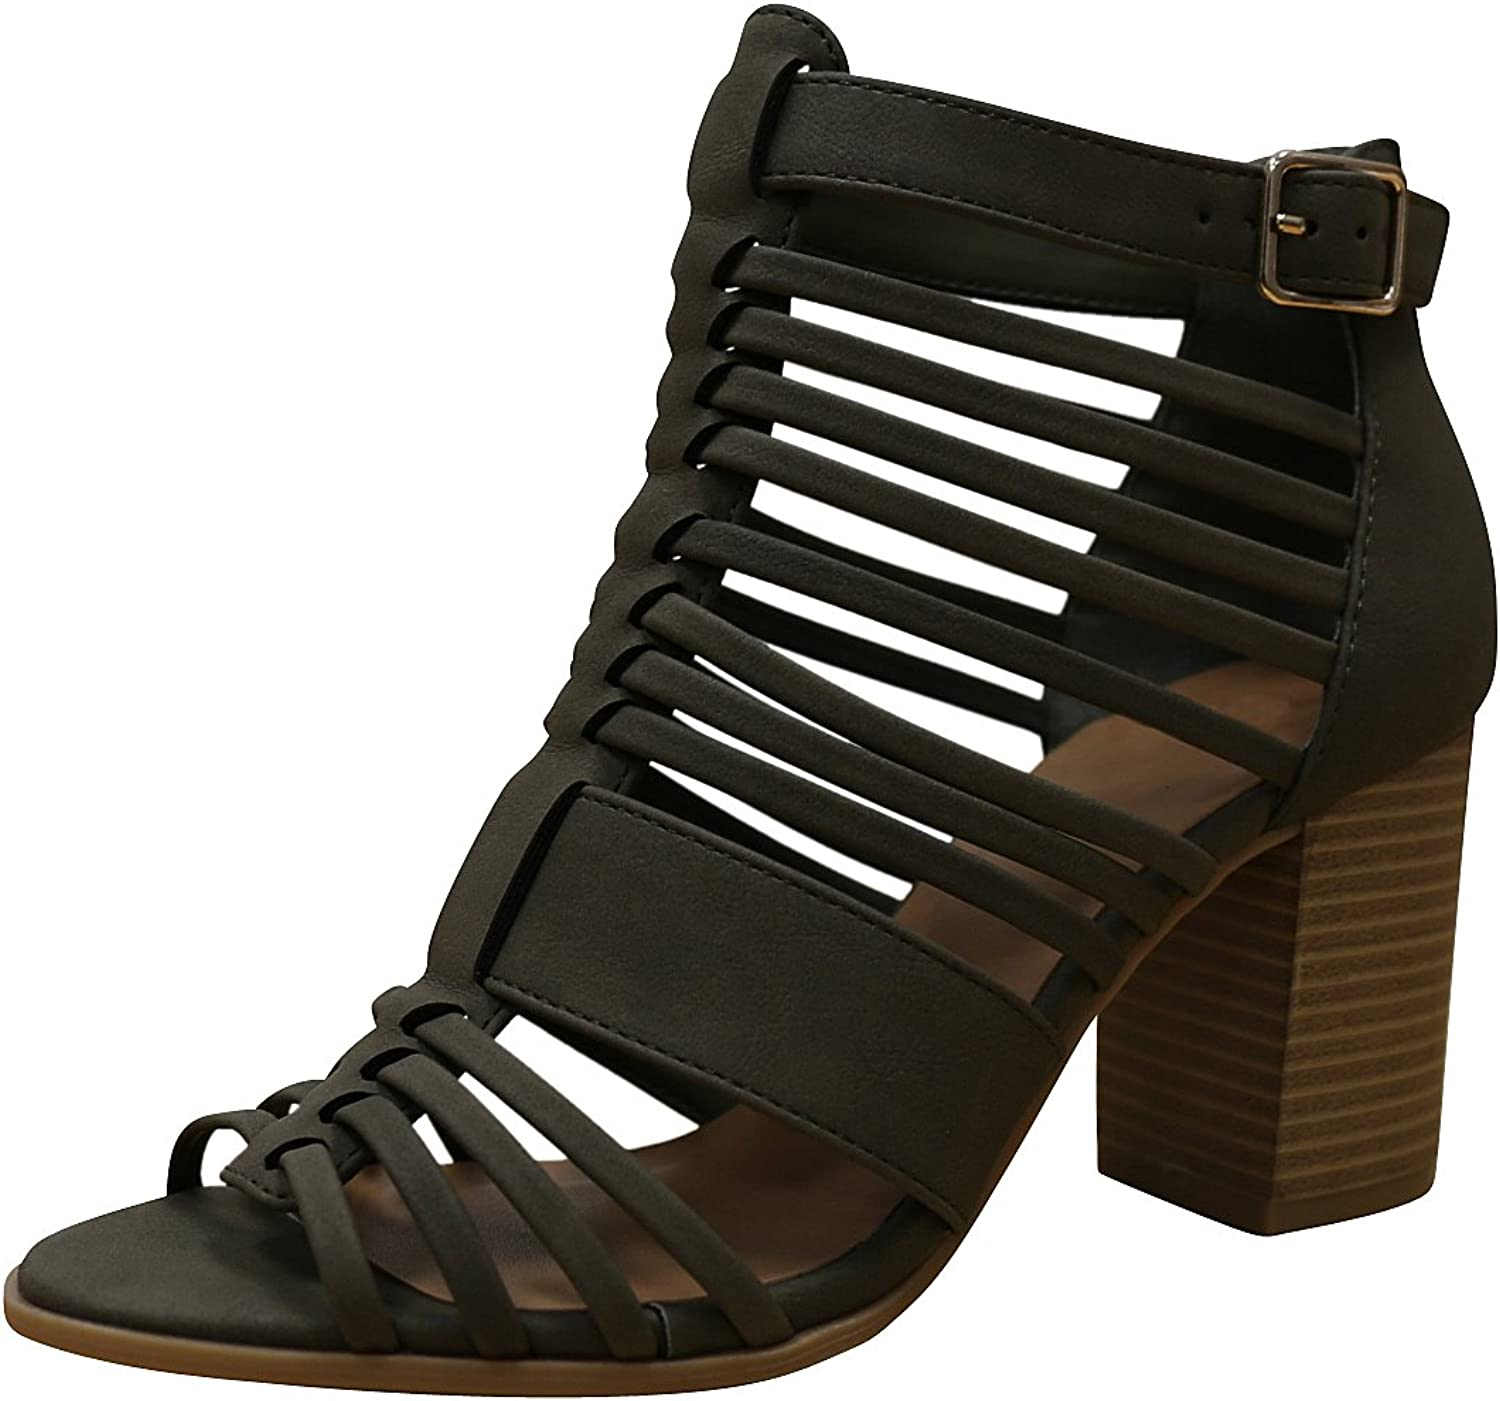 Cambridge Select Women's Open Toe Strappy Caged Cutout Gladiator Chunky Stacked Block Heel Ankle Bootie